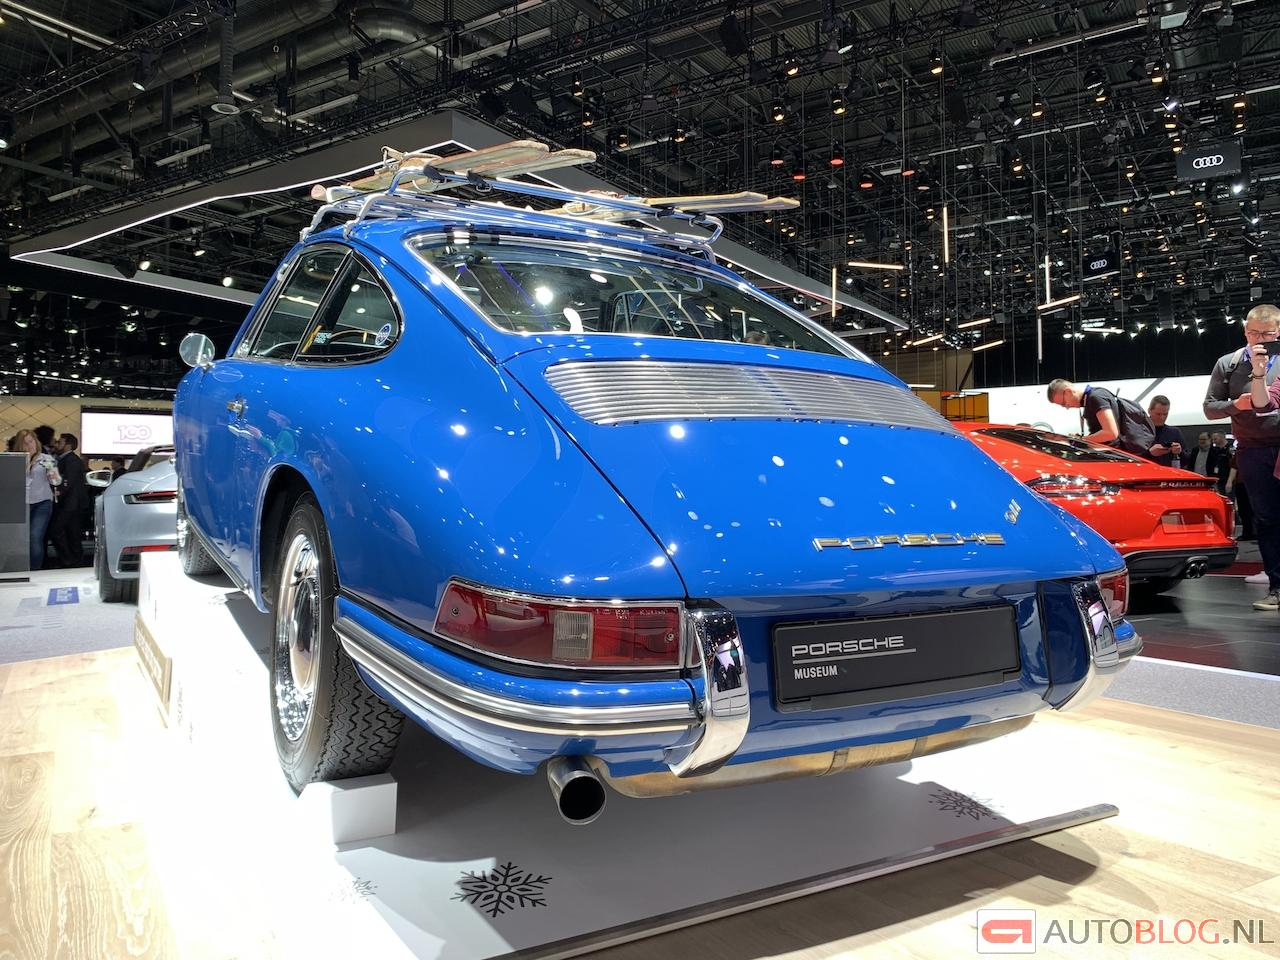 911-20-coupe-1965-00001.jpg